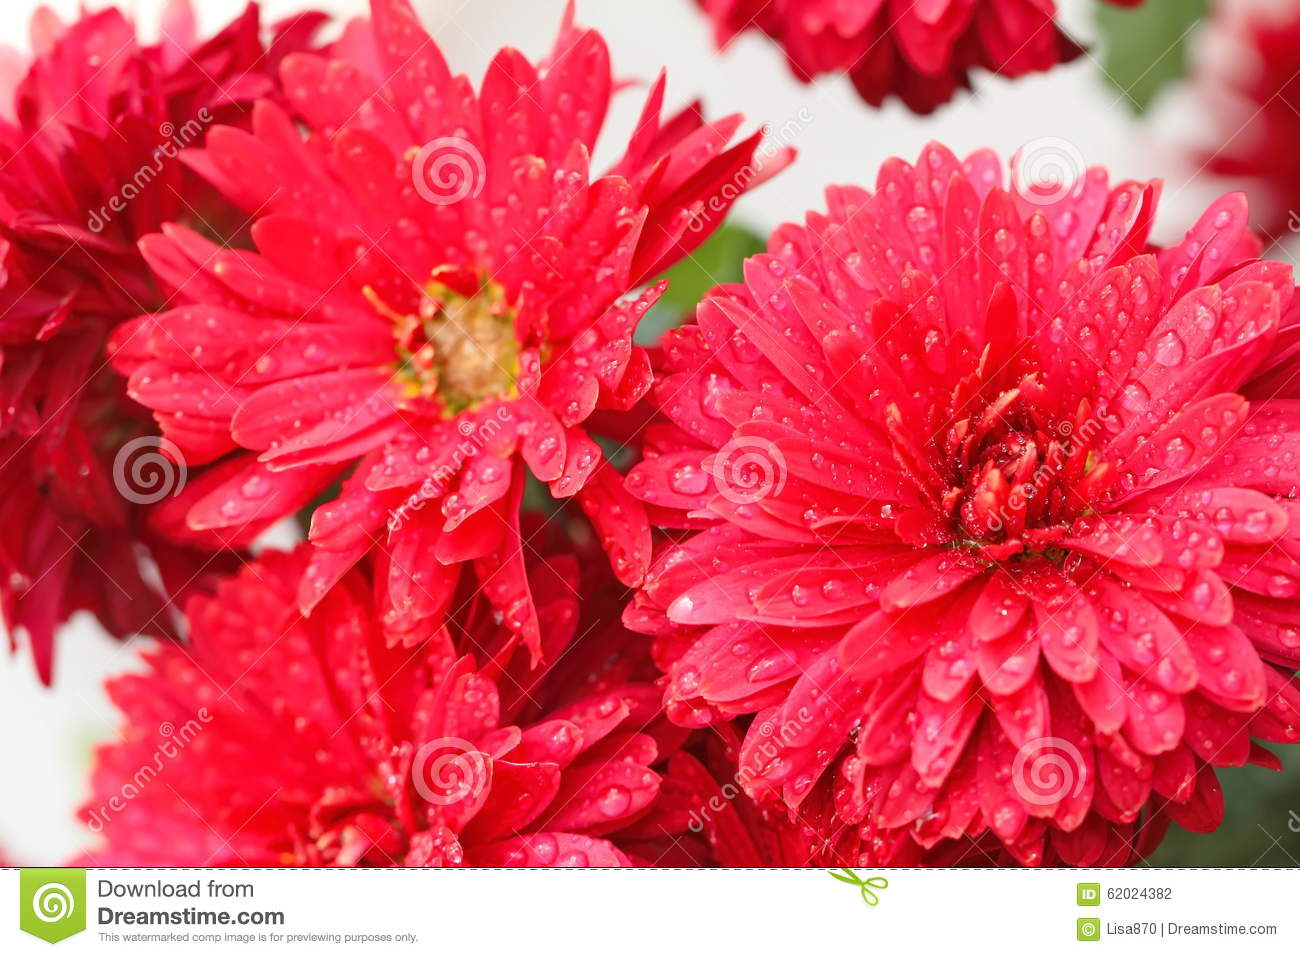 Tipi Di Fiori Rossi.Bunch Of Red Flowers Stock Photo Image Of Fall Bright 62024382